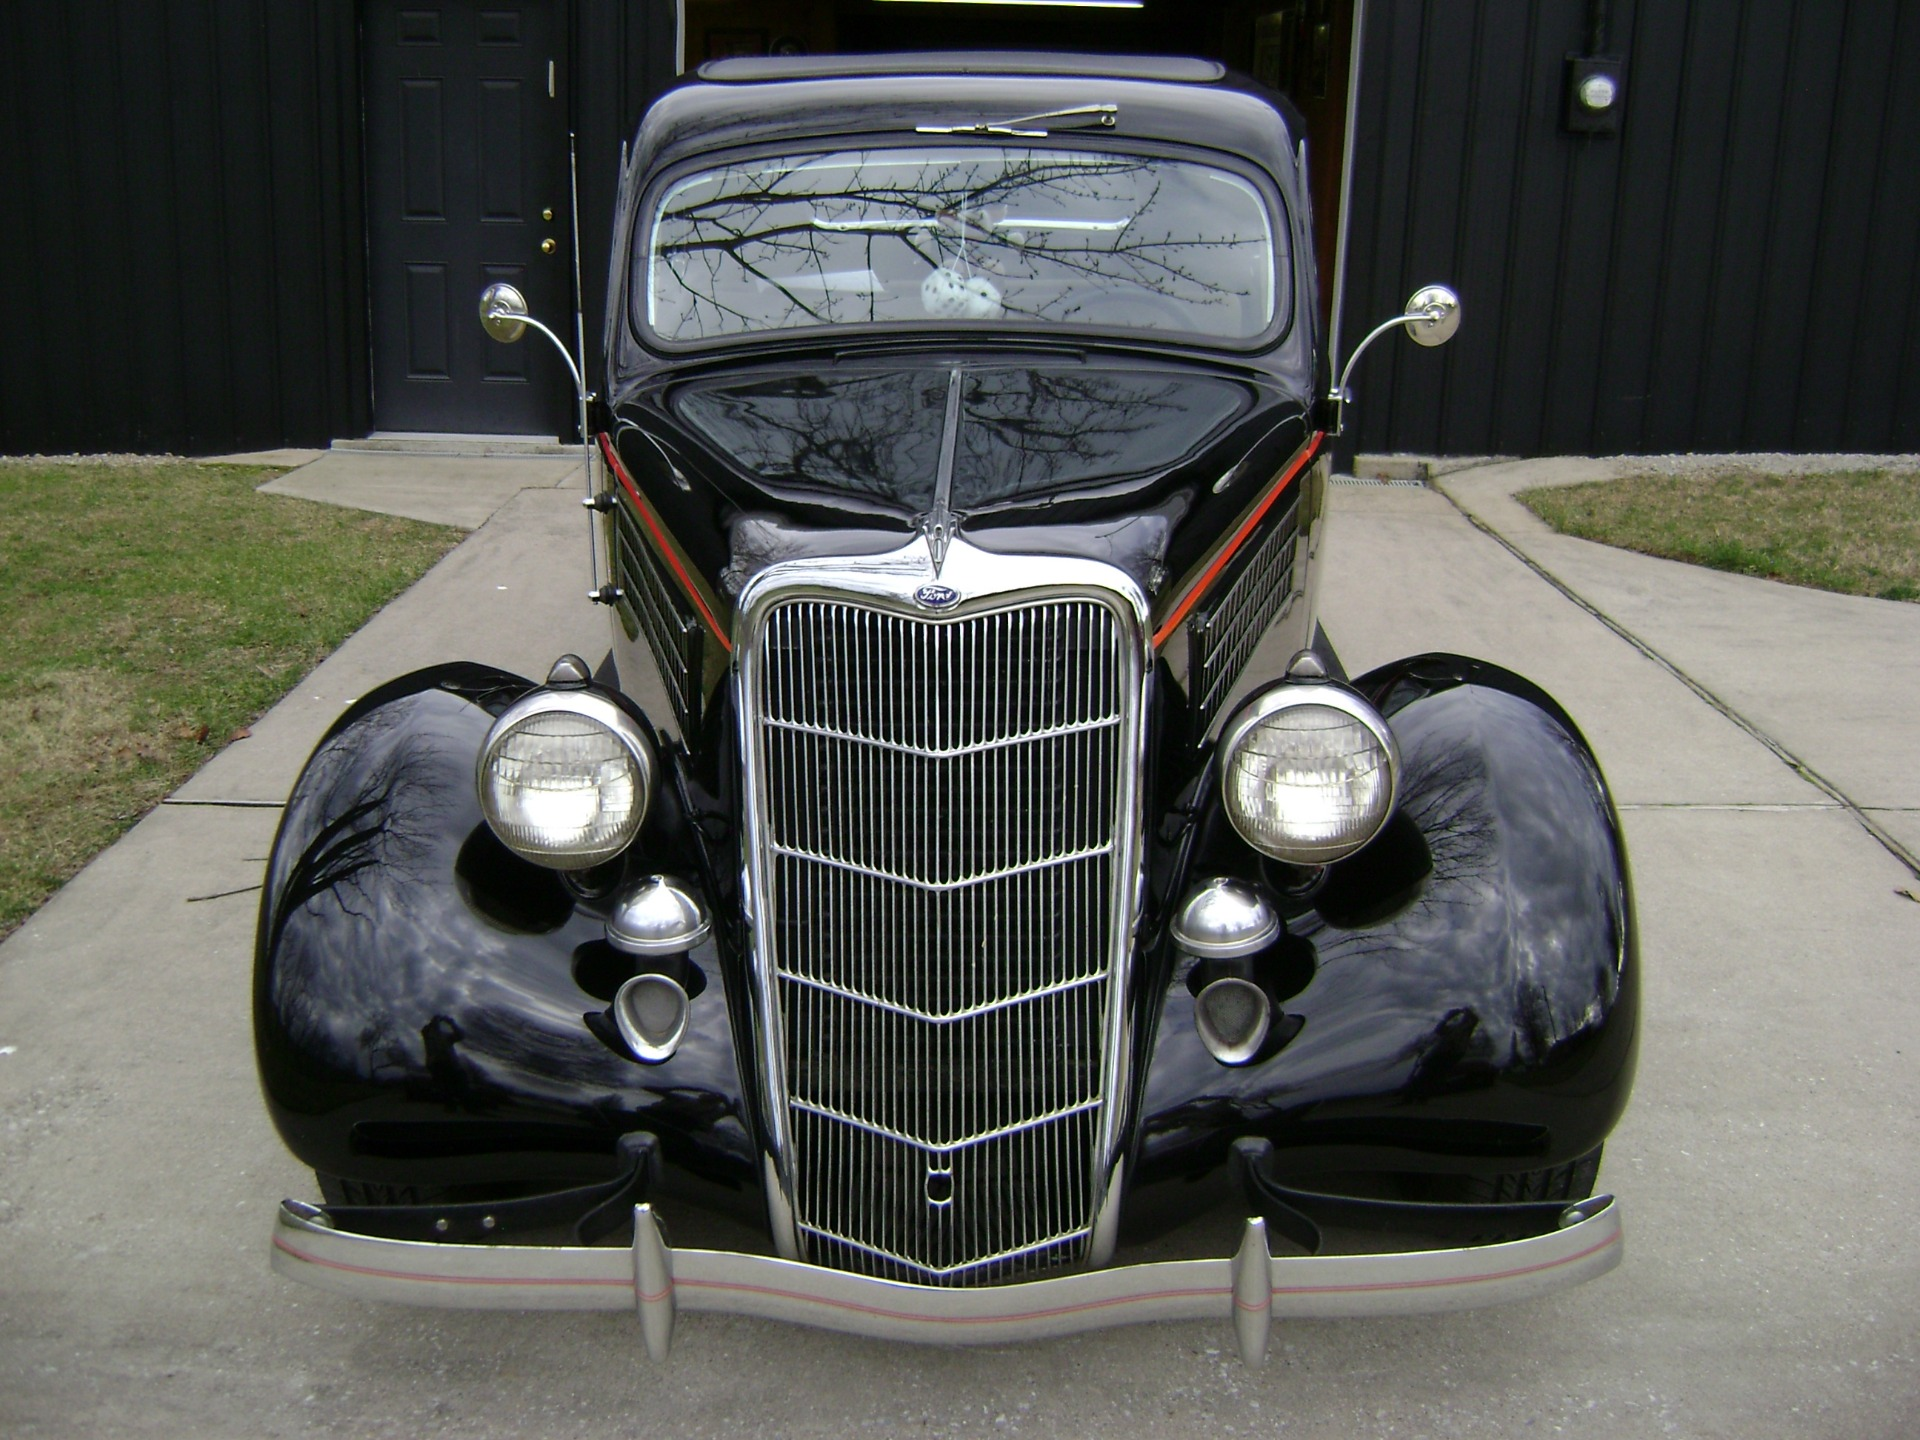 Used 1935 Ford Hot Rod / Street Rod -5 WINDOW COUPE -RUMBLER SEAT - REDUCED PRICE! - WOW | Mundelein, IL